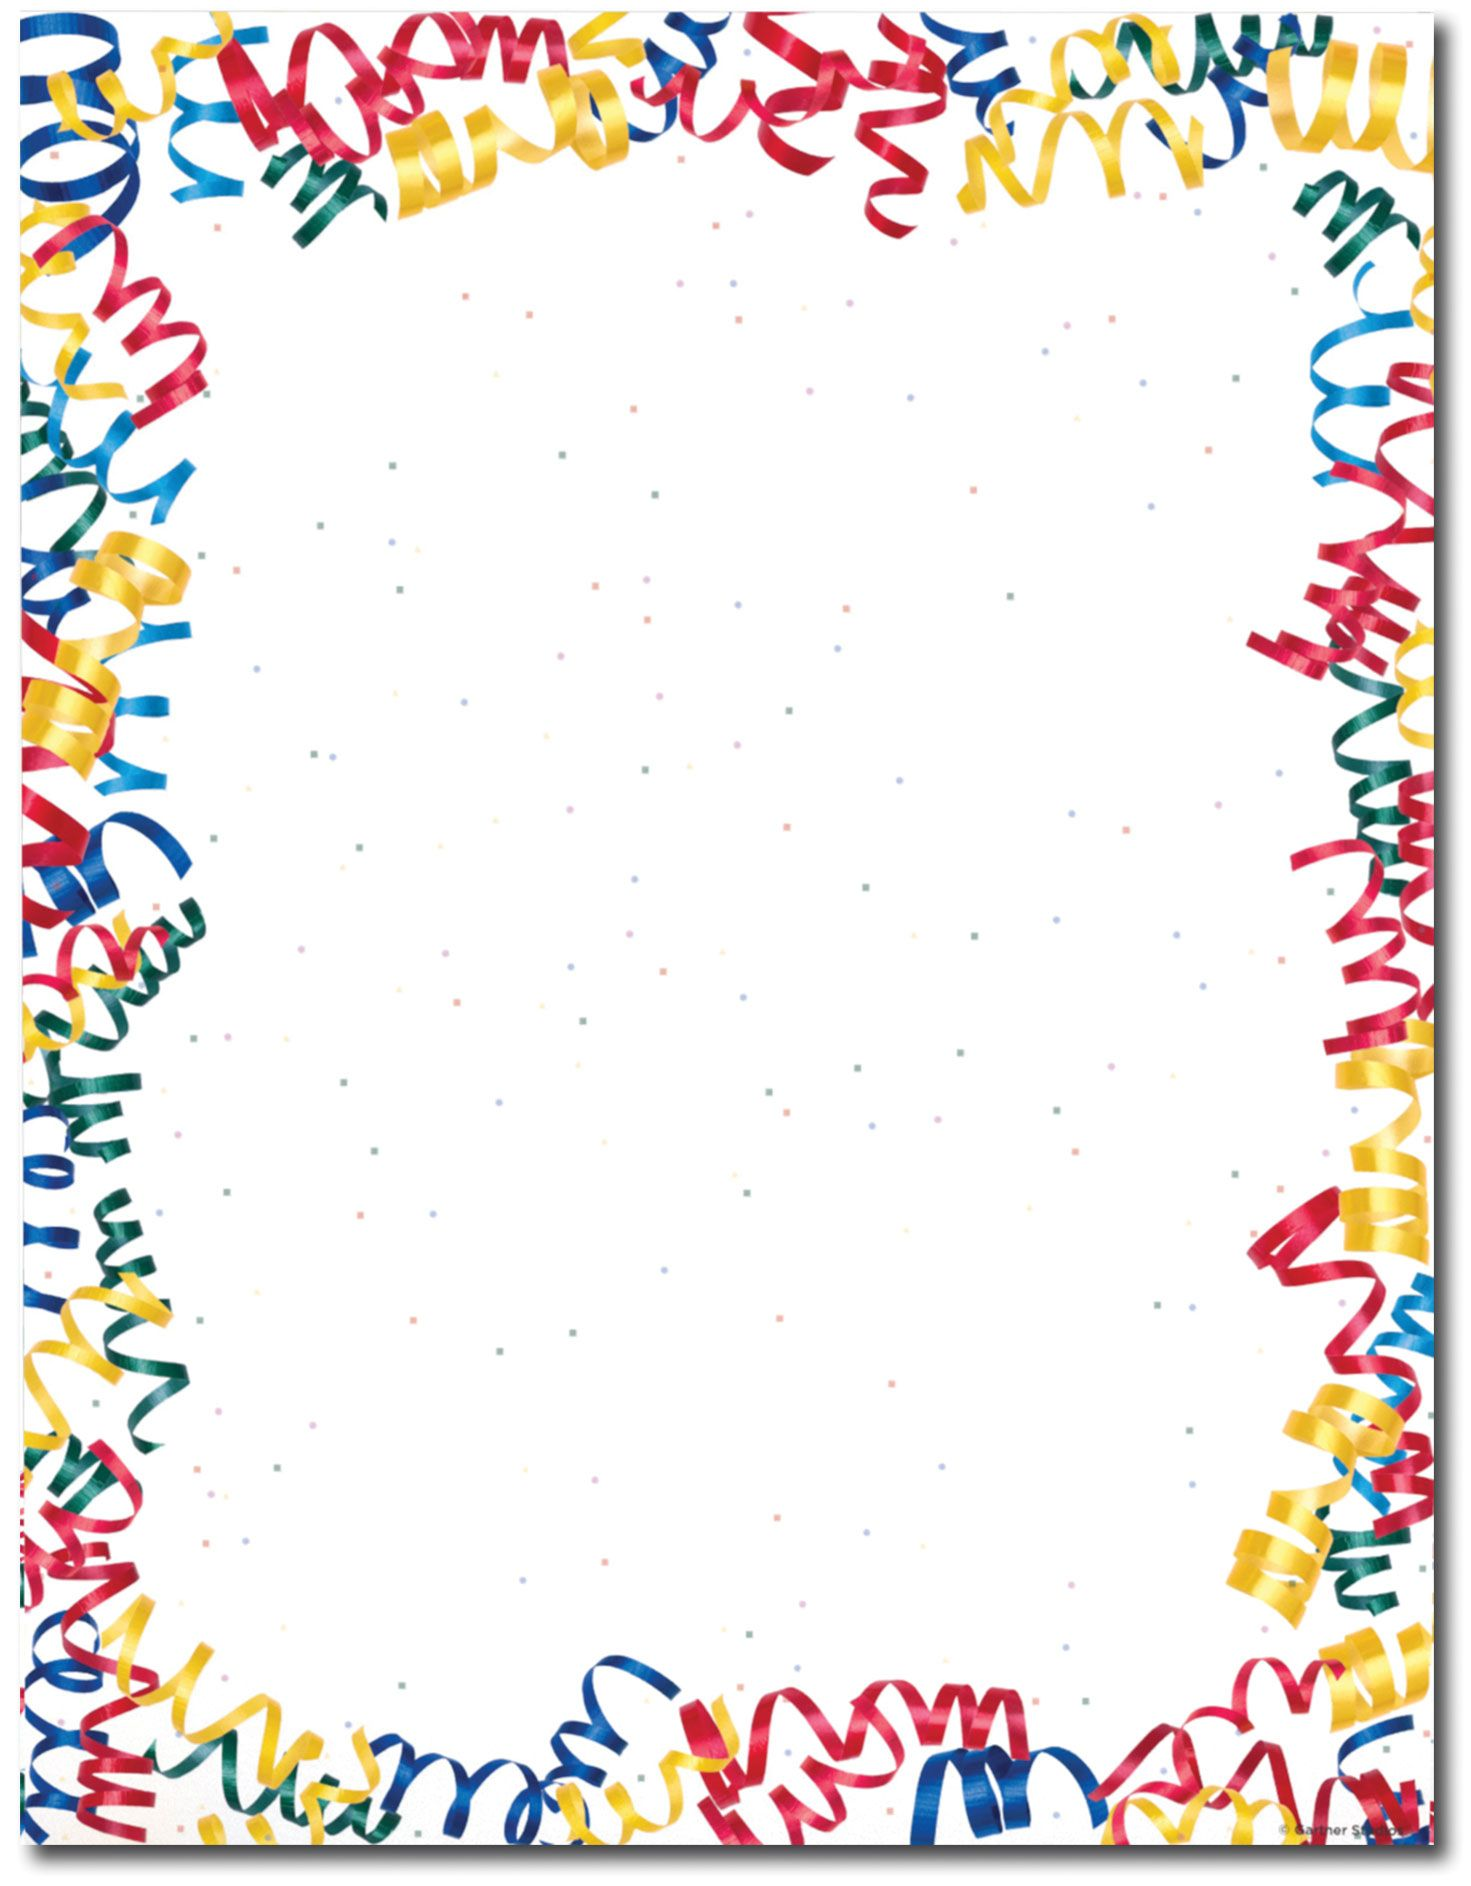 Displaying 17 Images For Birthday Confetti Border Streamer